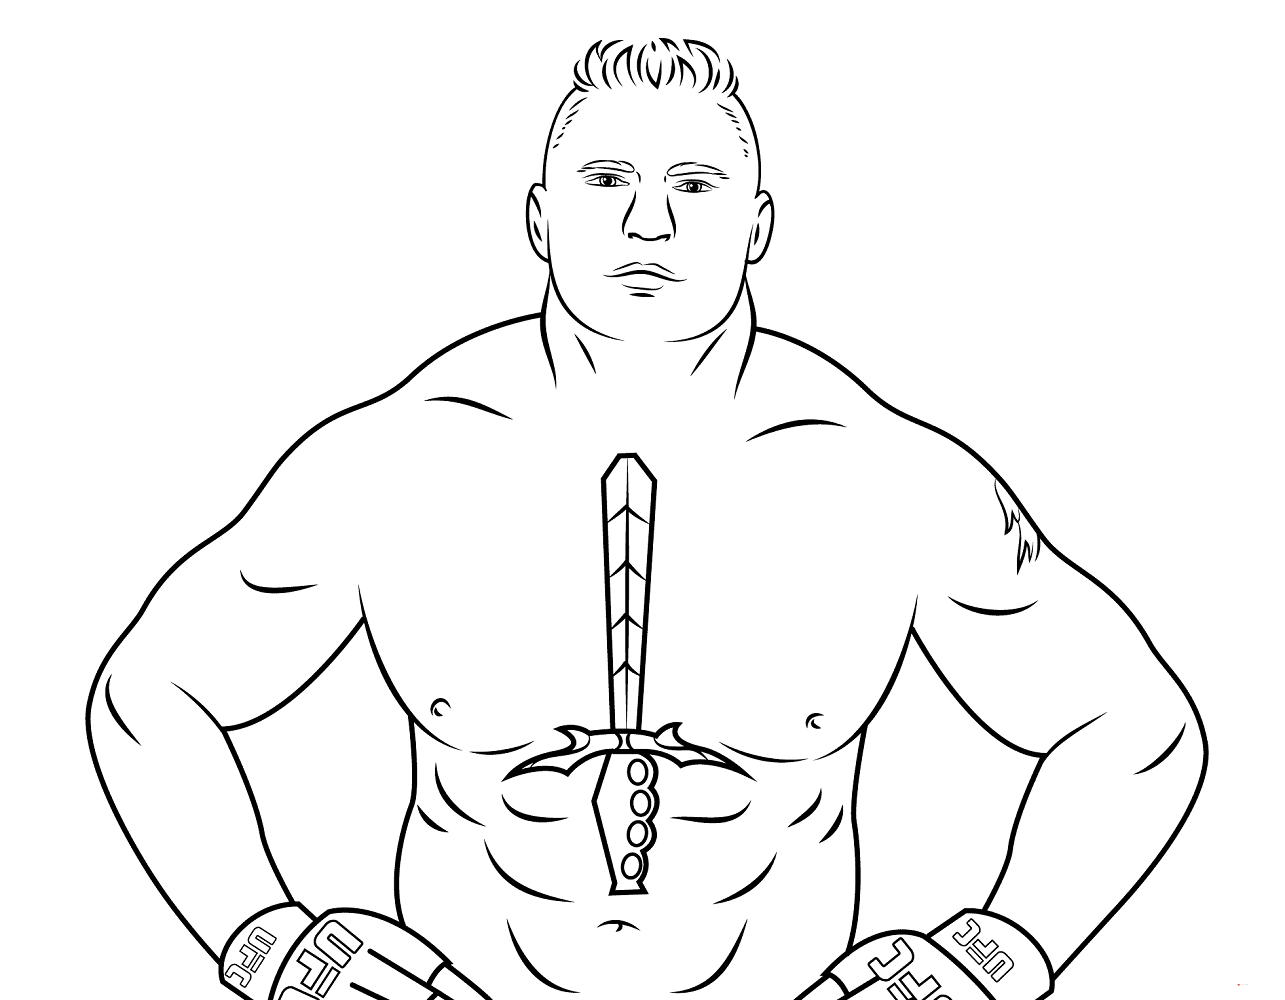 Free Printable Wwe Coloring Page Brock Lesnar Wwe Coloring Pages Coloring Pages Brock Lesnar